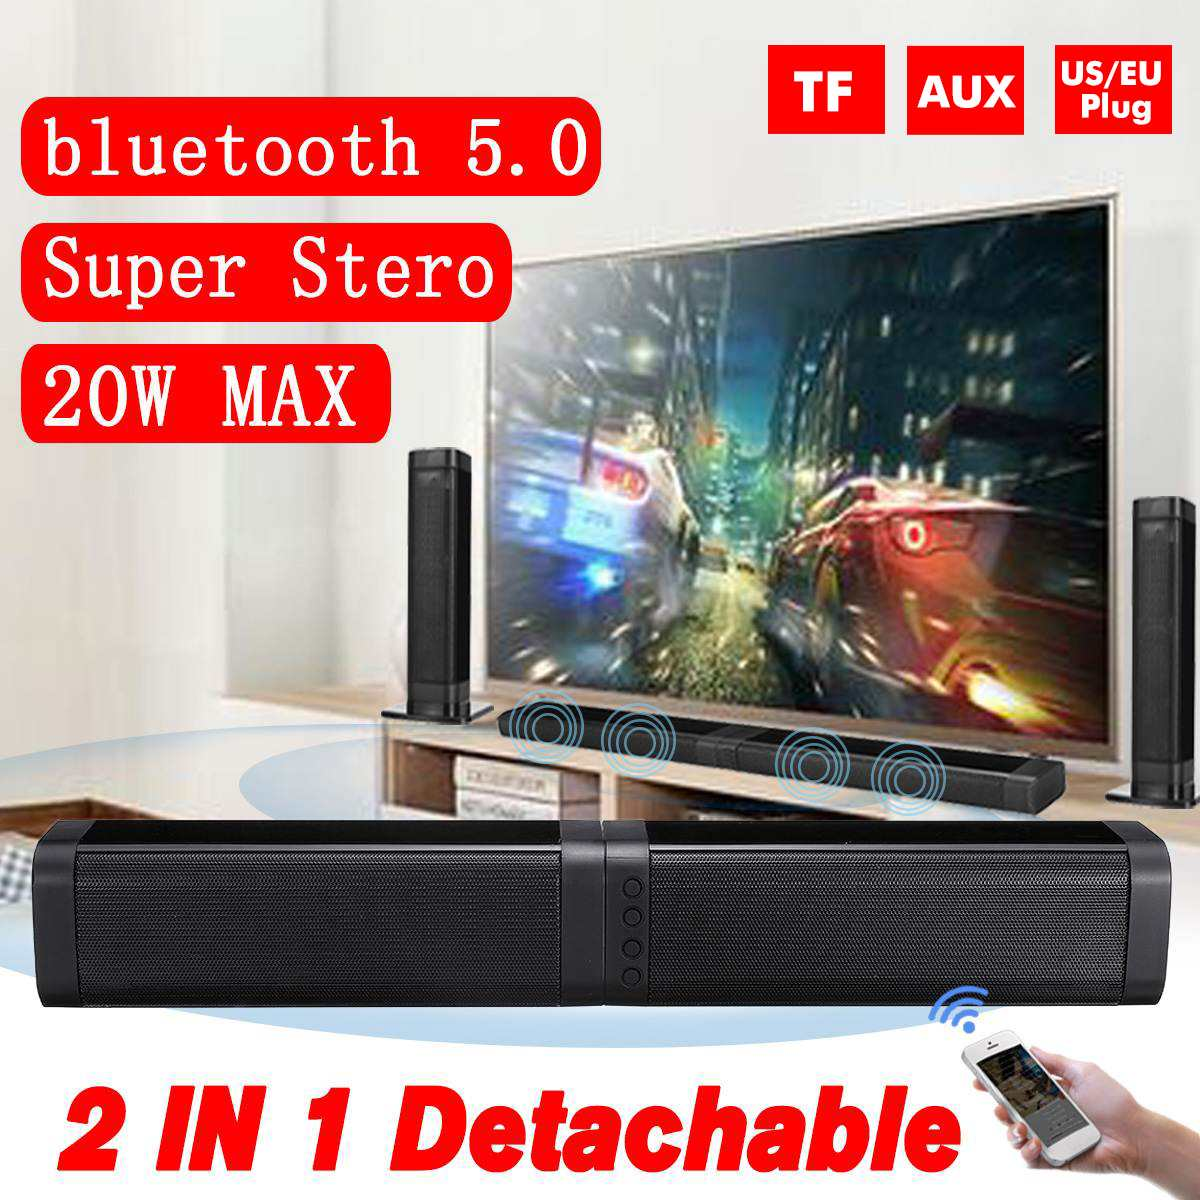 2 PCS 20 W Drahtlose bluetooth Soundbar Stereo Lautsprecher Heimkino <font><b>TV</b></font> <font><b>Sound</b></font> <font><b>Bar</b></font> Super Bass 4D Stereo Surround <font><b>Sound</b></font> system image